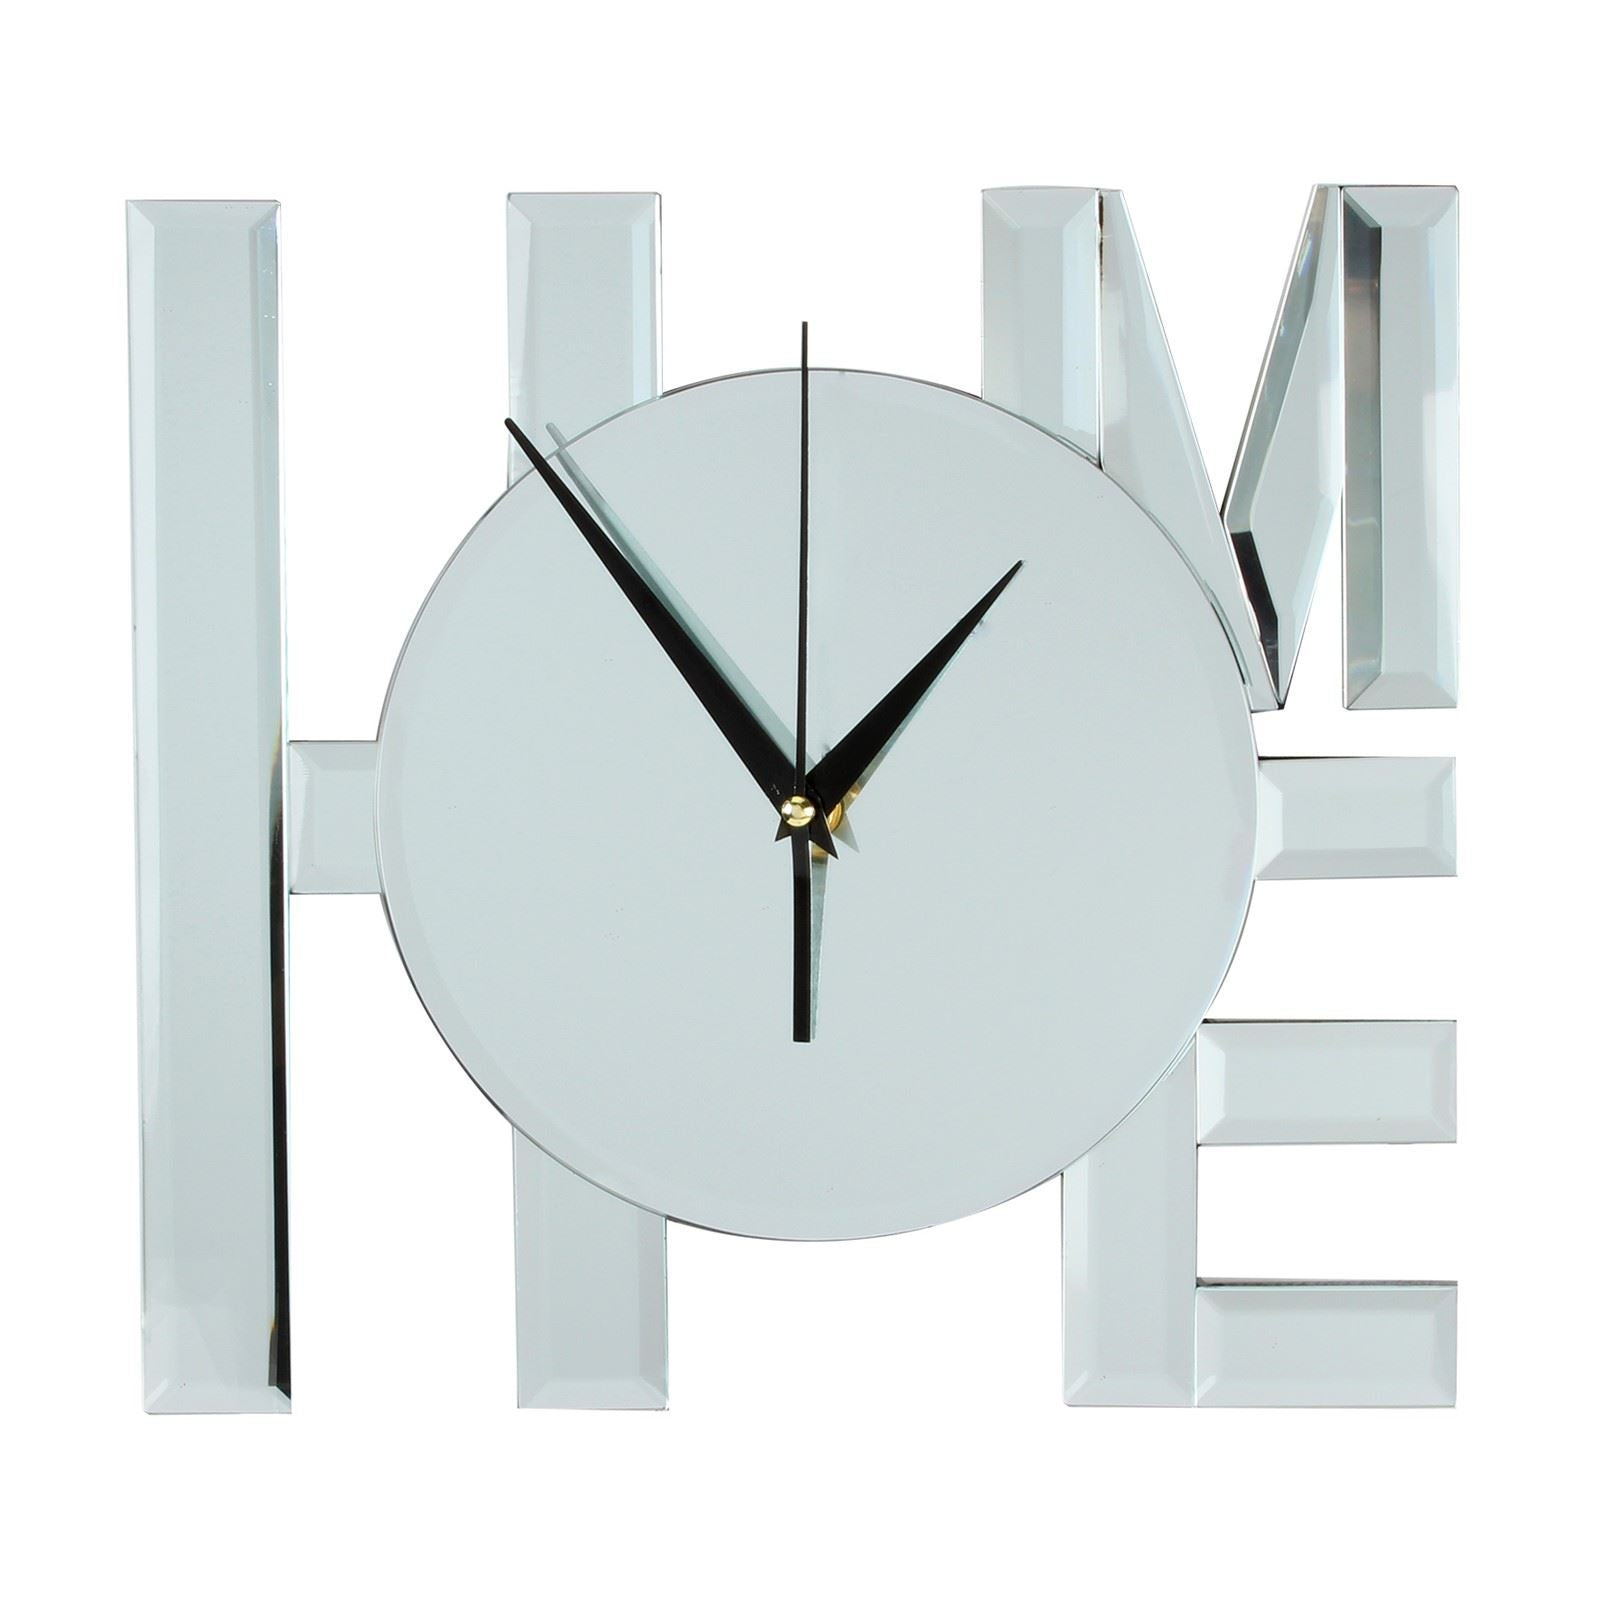 Hometime Hestia Glass Mirrored Wall Clock HOME - HE600